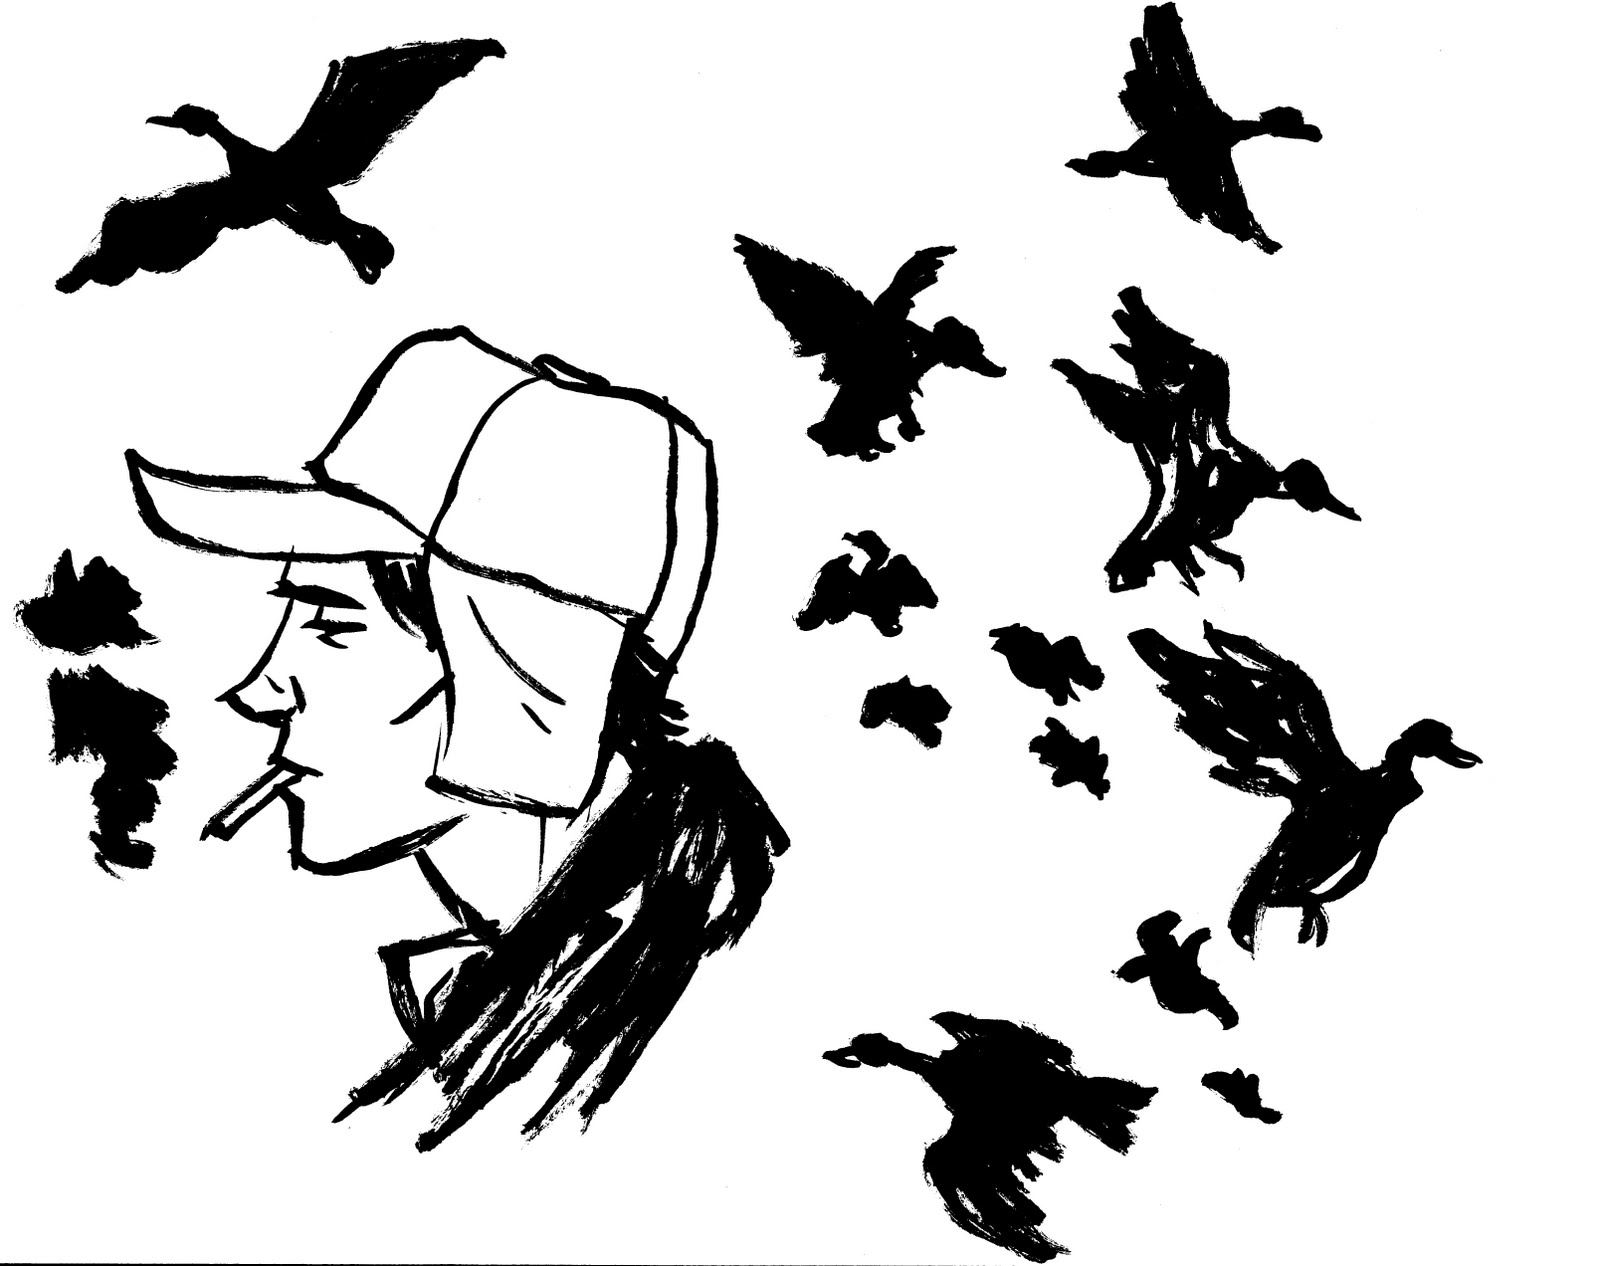 an analysis of teenage life in the catcher in the rye by jd salinger Has, by his own choice, remained out of the public eye for most of his life   holden caulfield = sketch of an american teenager nearly all readers identify  with or see some of their friends  similarities between jd salinger and catcher  in the rye  you will be expected to pull examples of each theme out of the  novel.